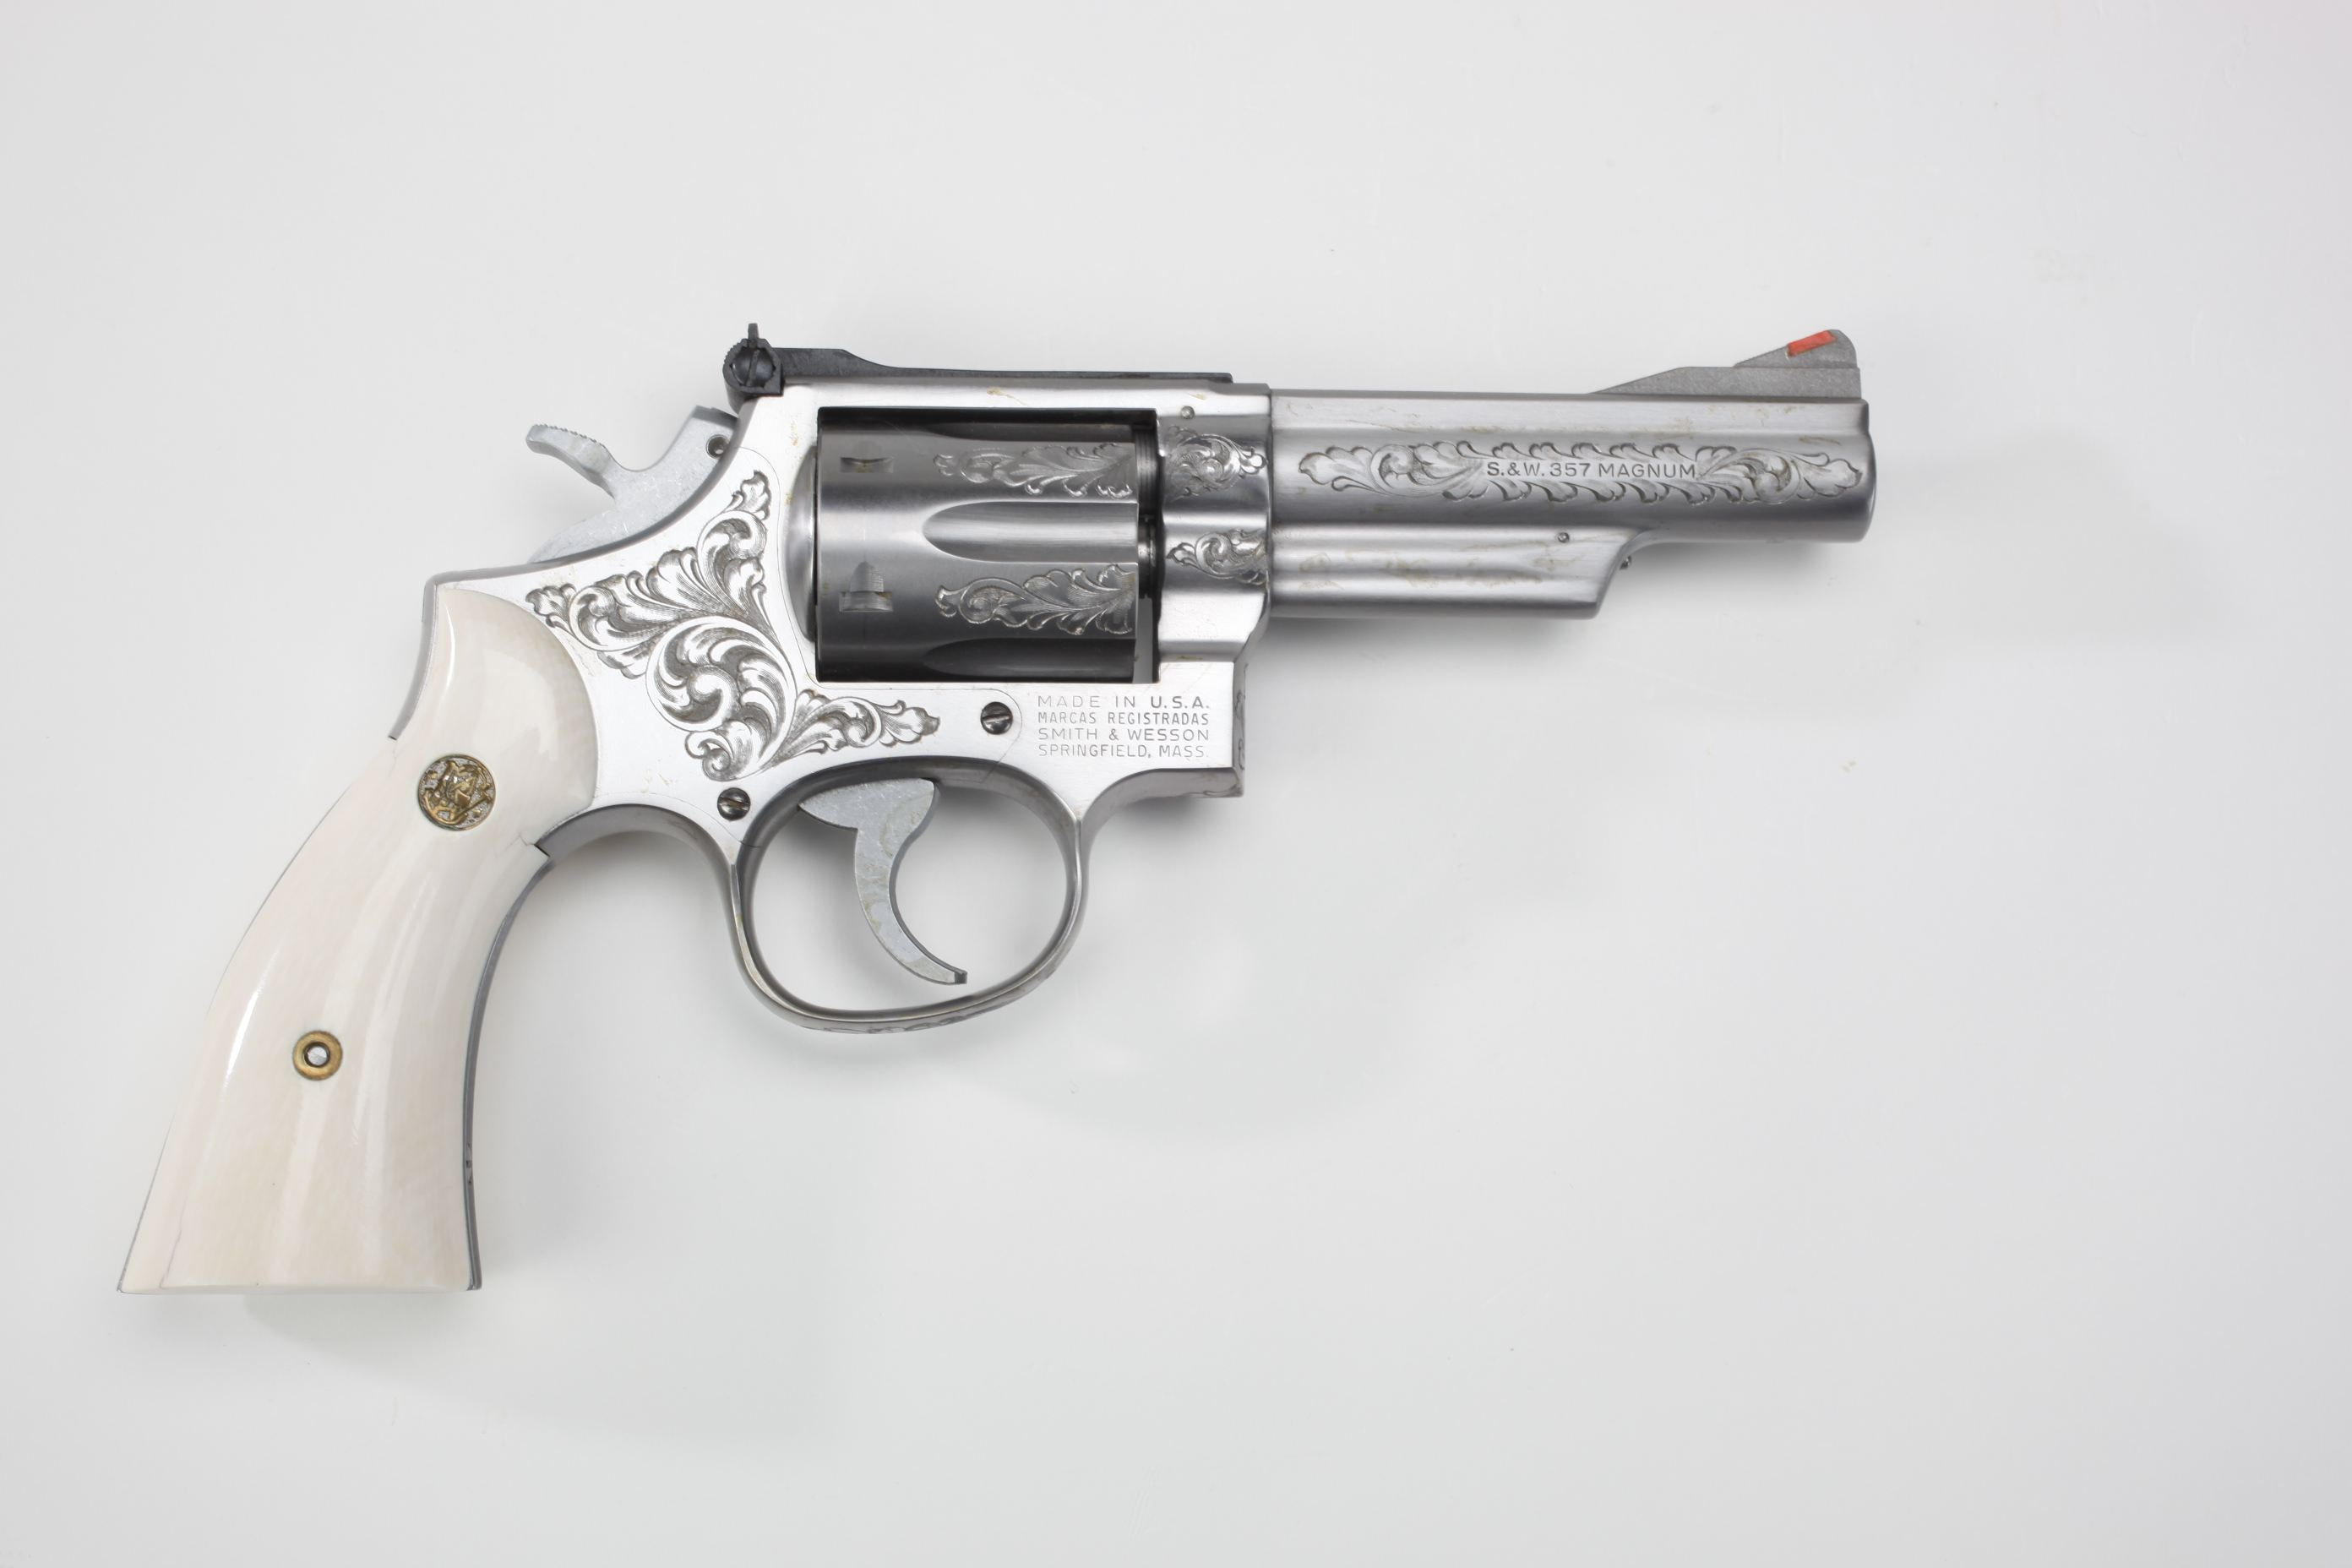 Smith & Wesson Model 66 Double-Action Revolver w/ ivory grip panels